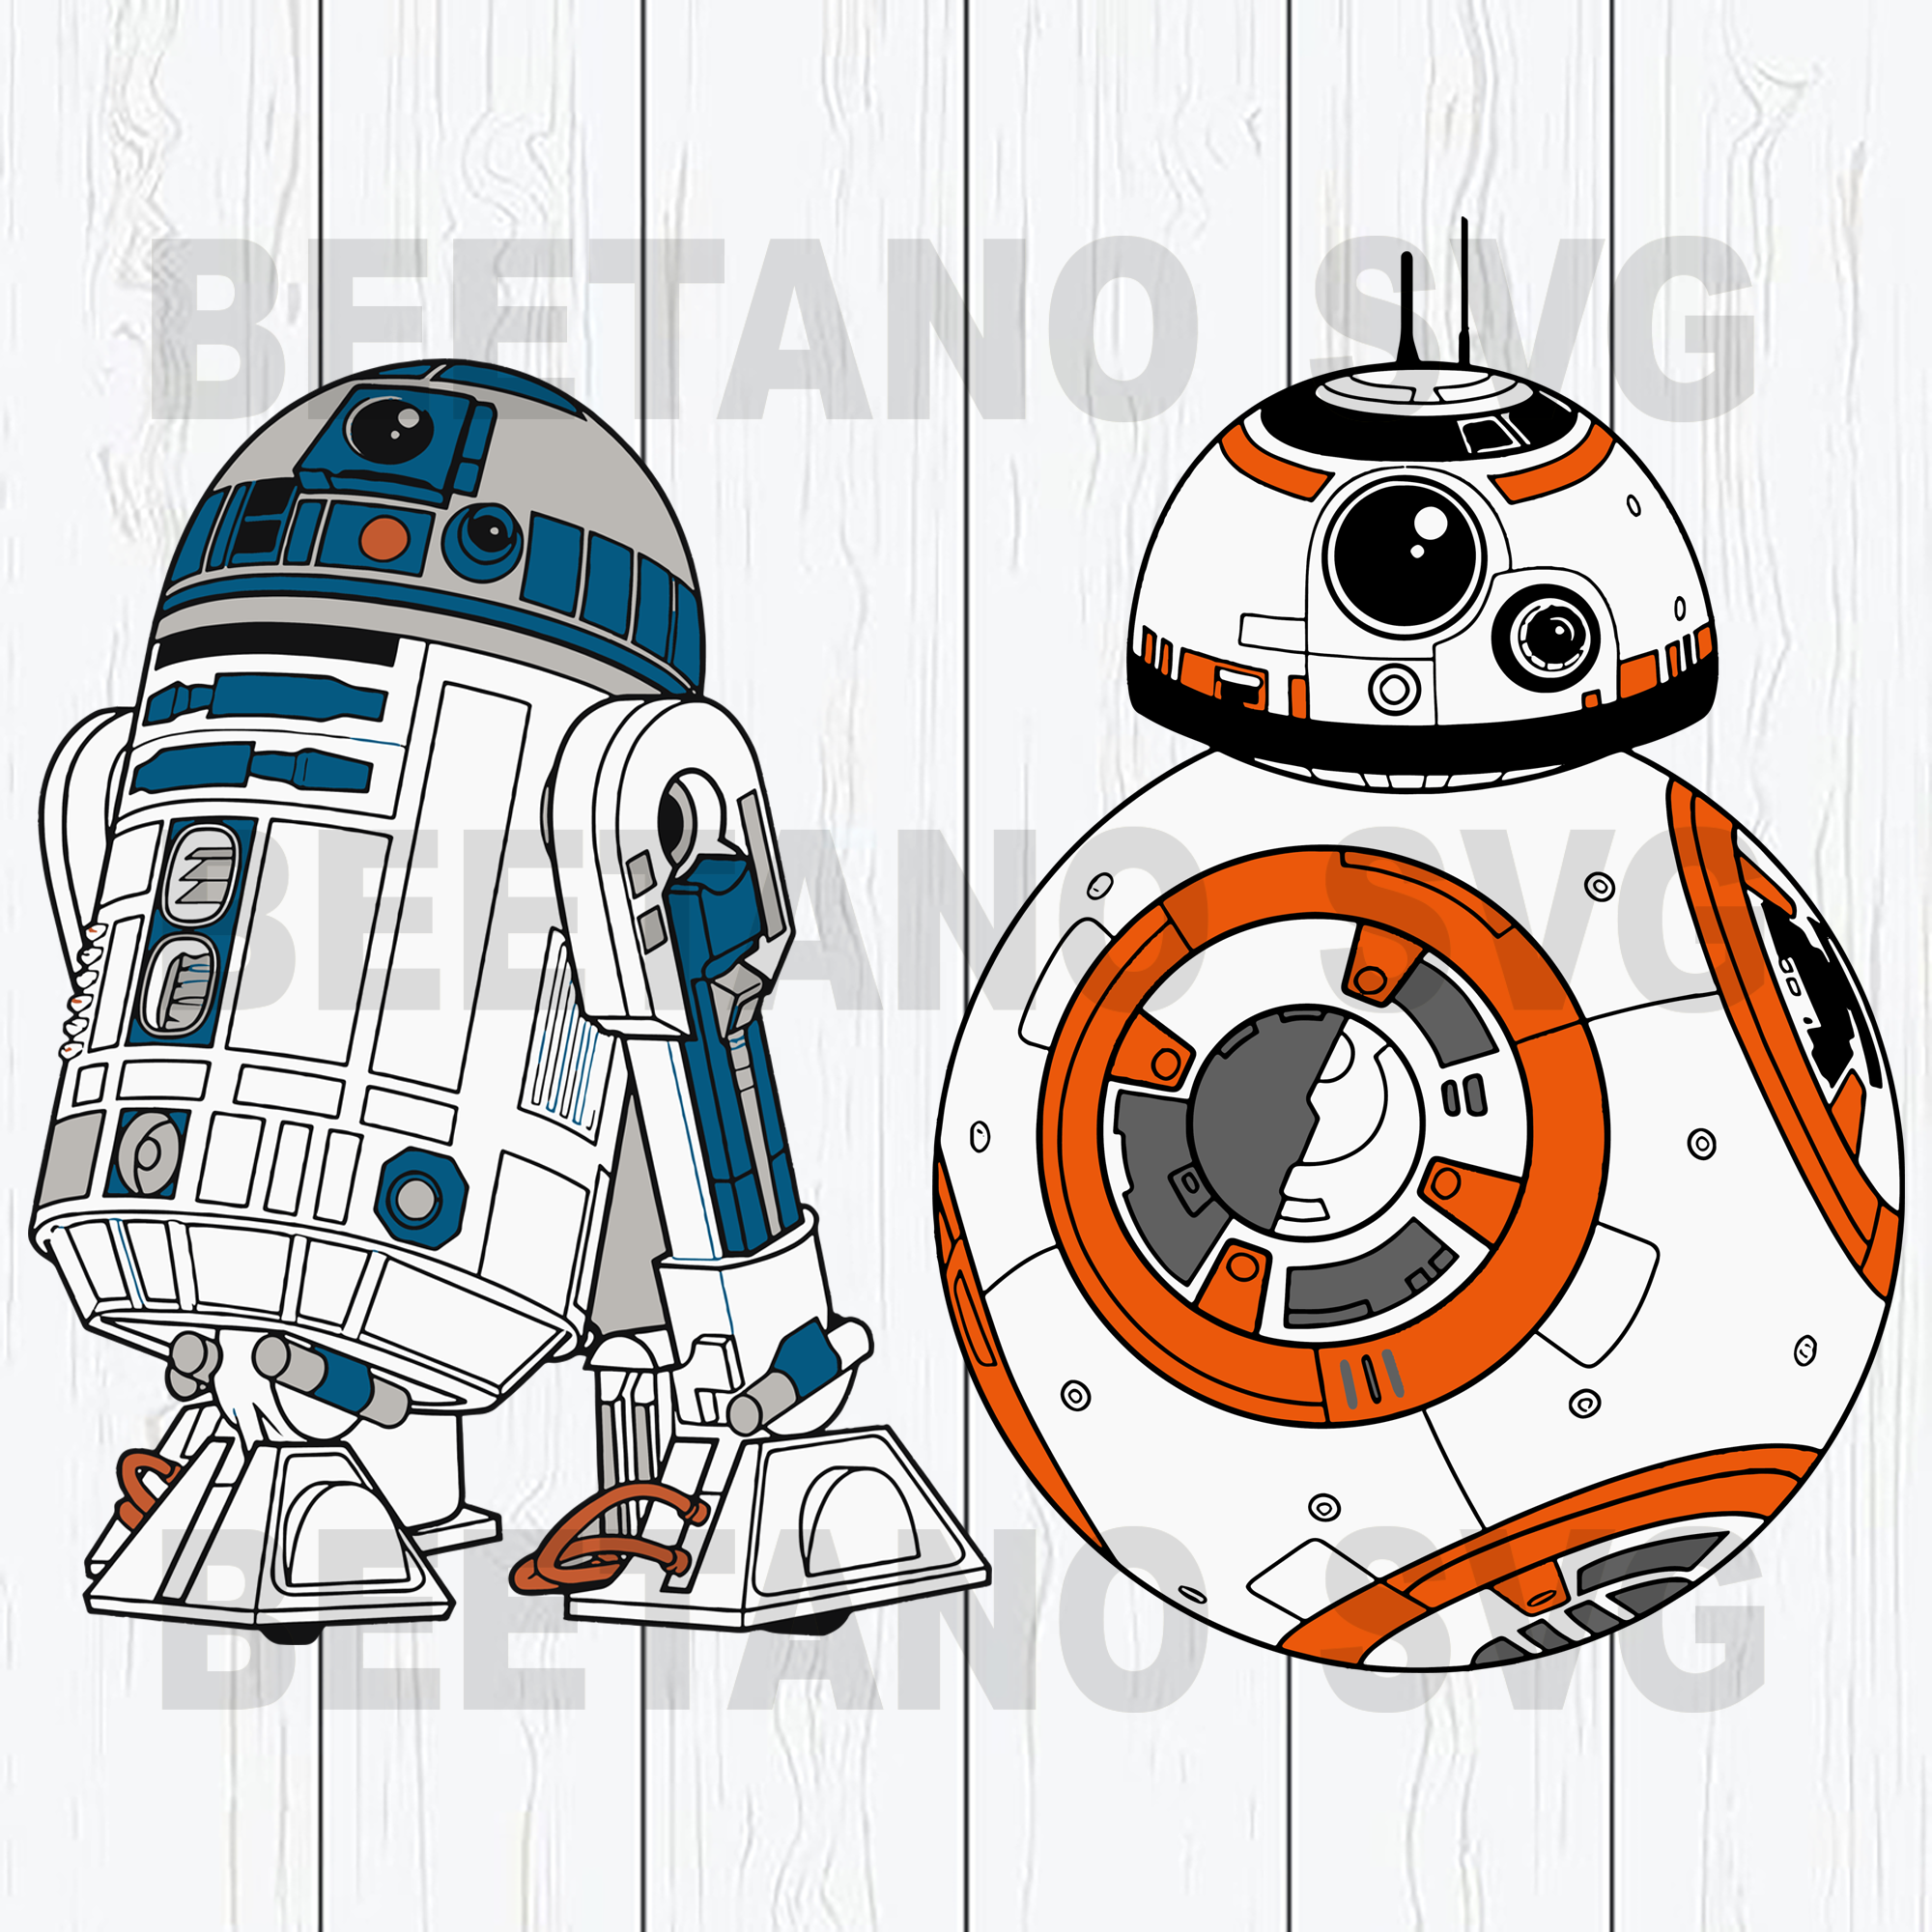 Star wars robot robo r2d2 Cutting Files For Cricut, SVG, DXF, EPS, PNG Instant Download